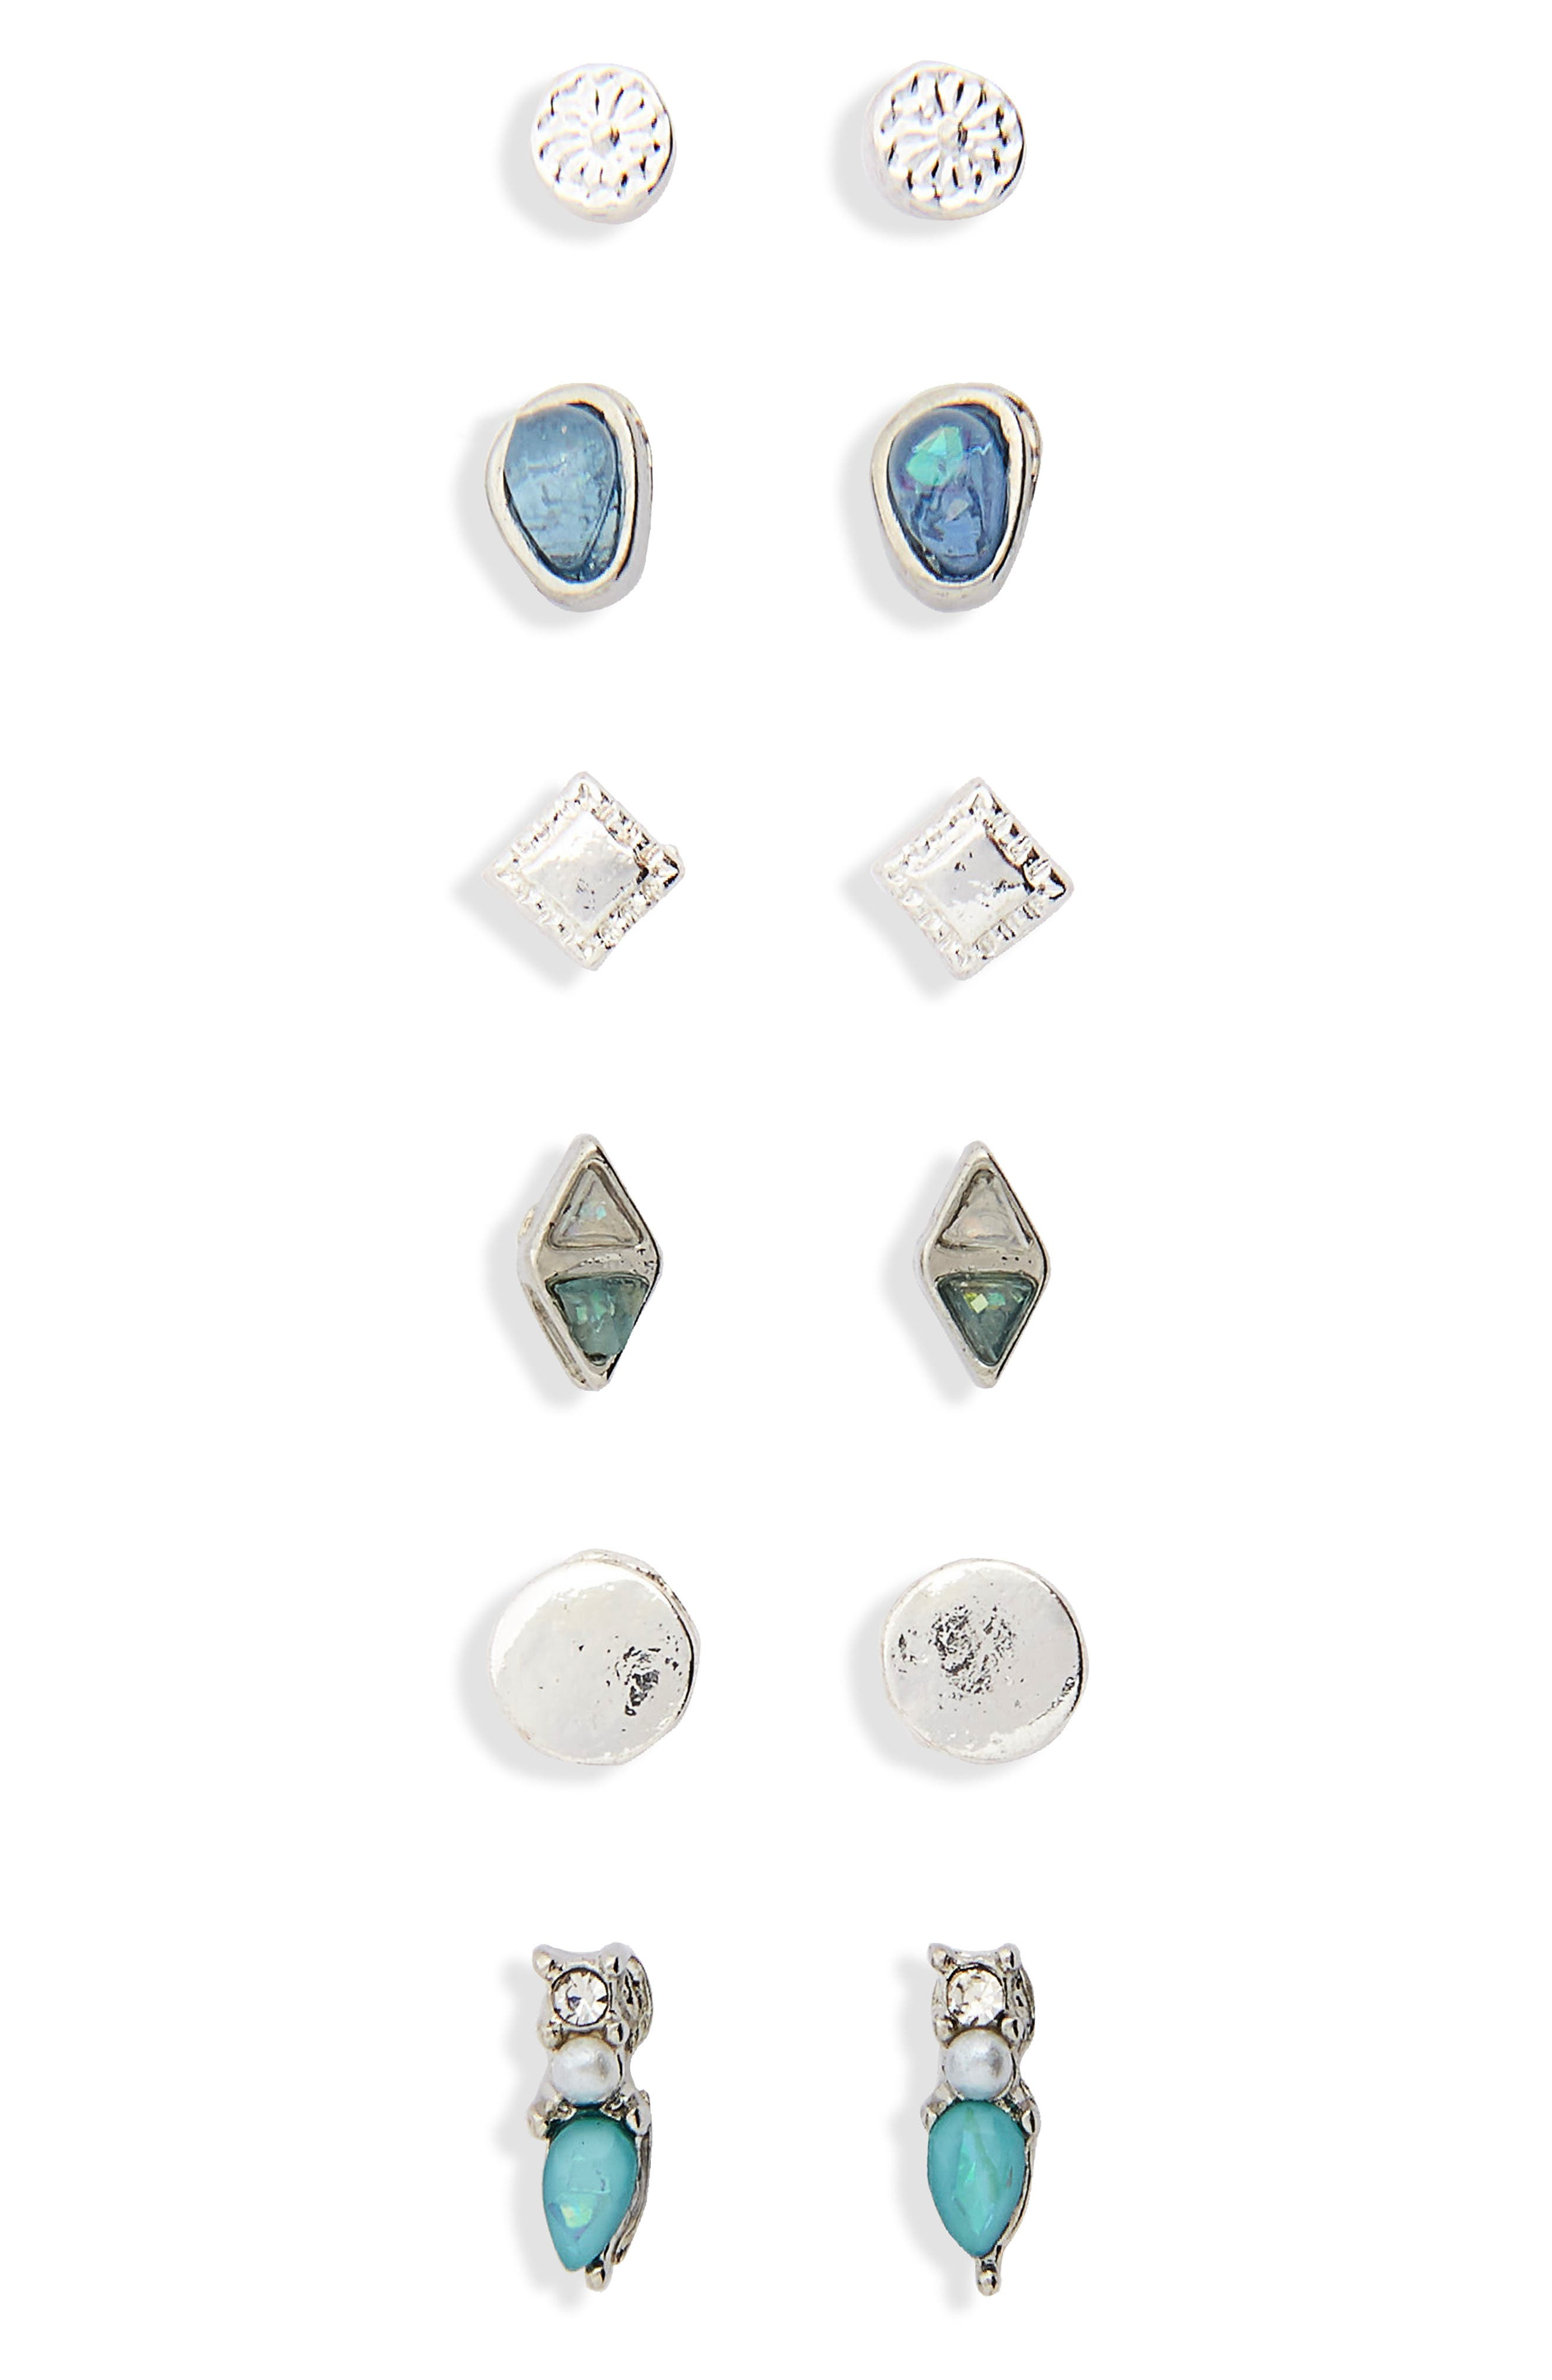 6-Pack Dainty Stone Stud Earrings,                         Main,                         color, Silver/ Blue